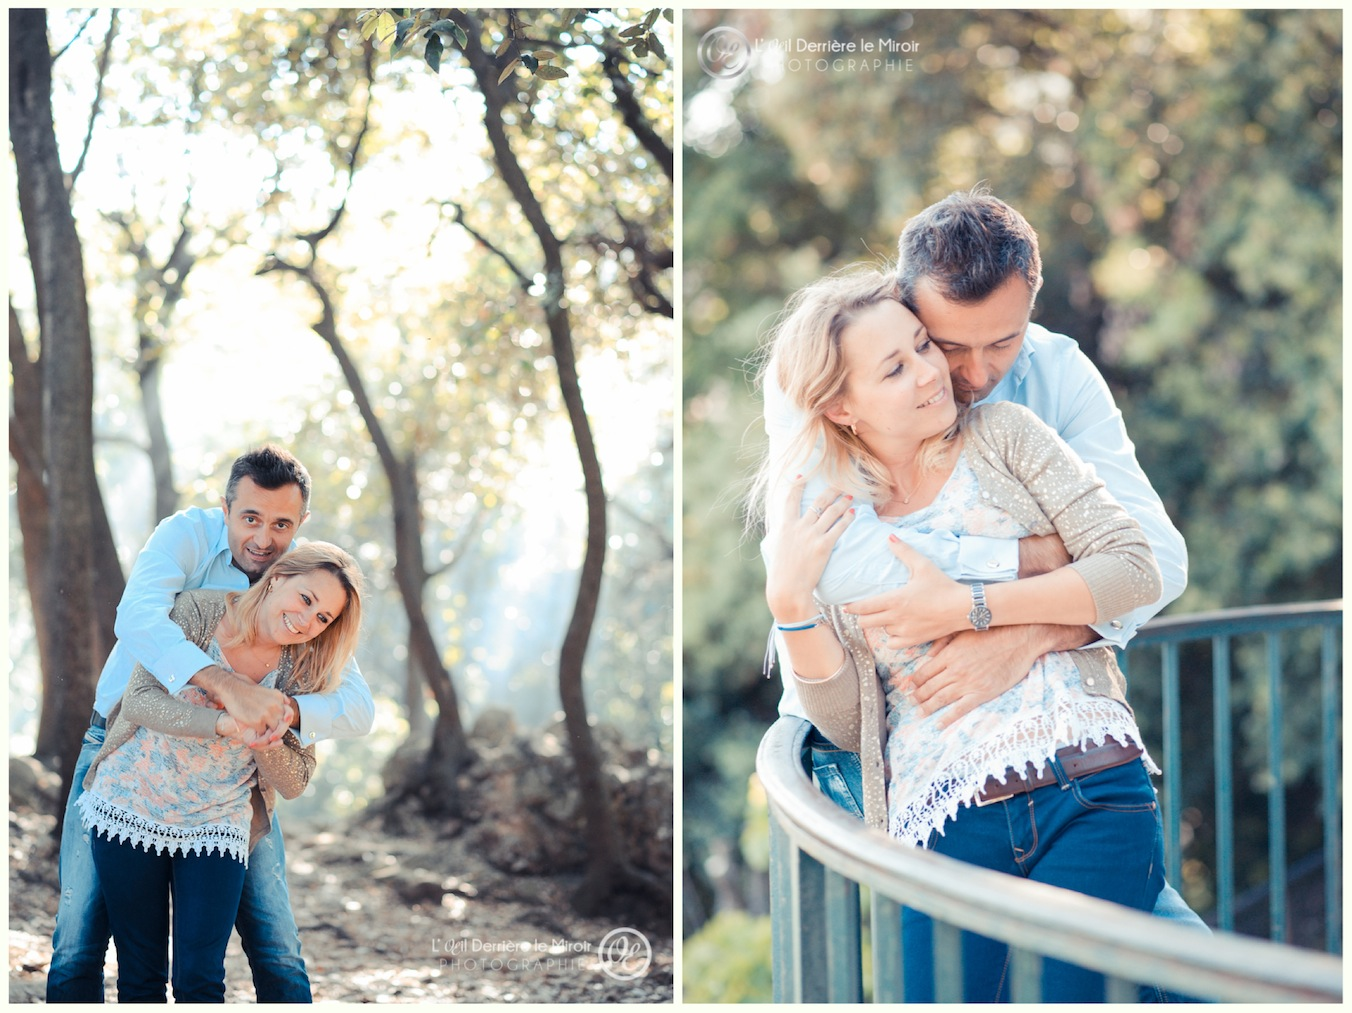 Photographe-Couple-Grasse-dj05